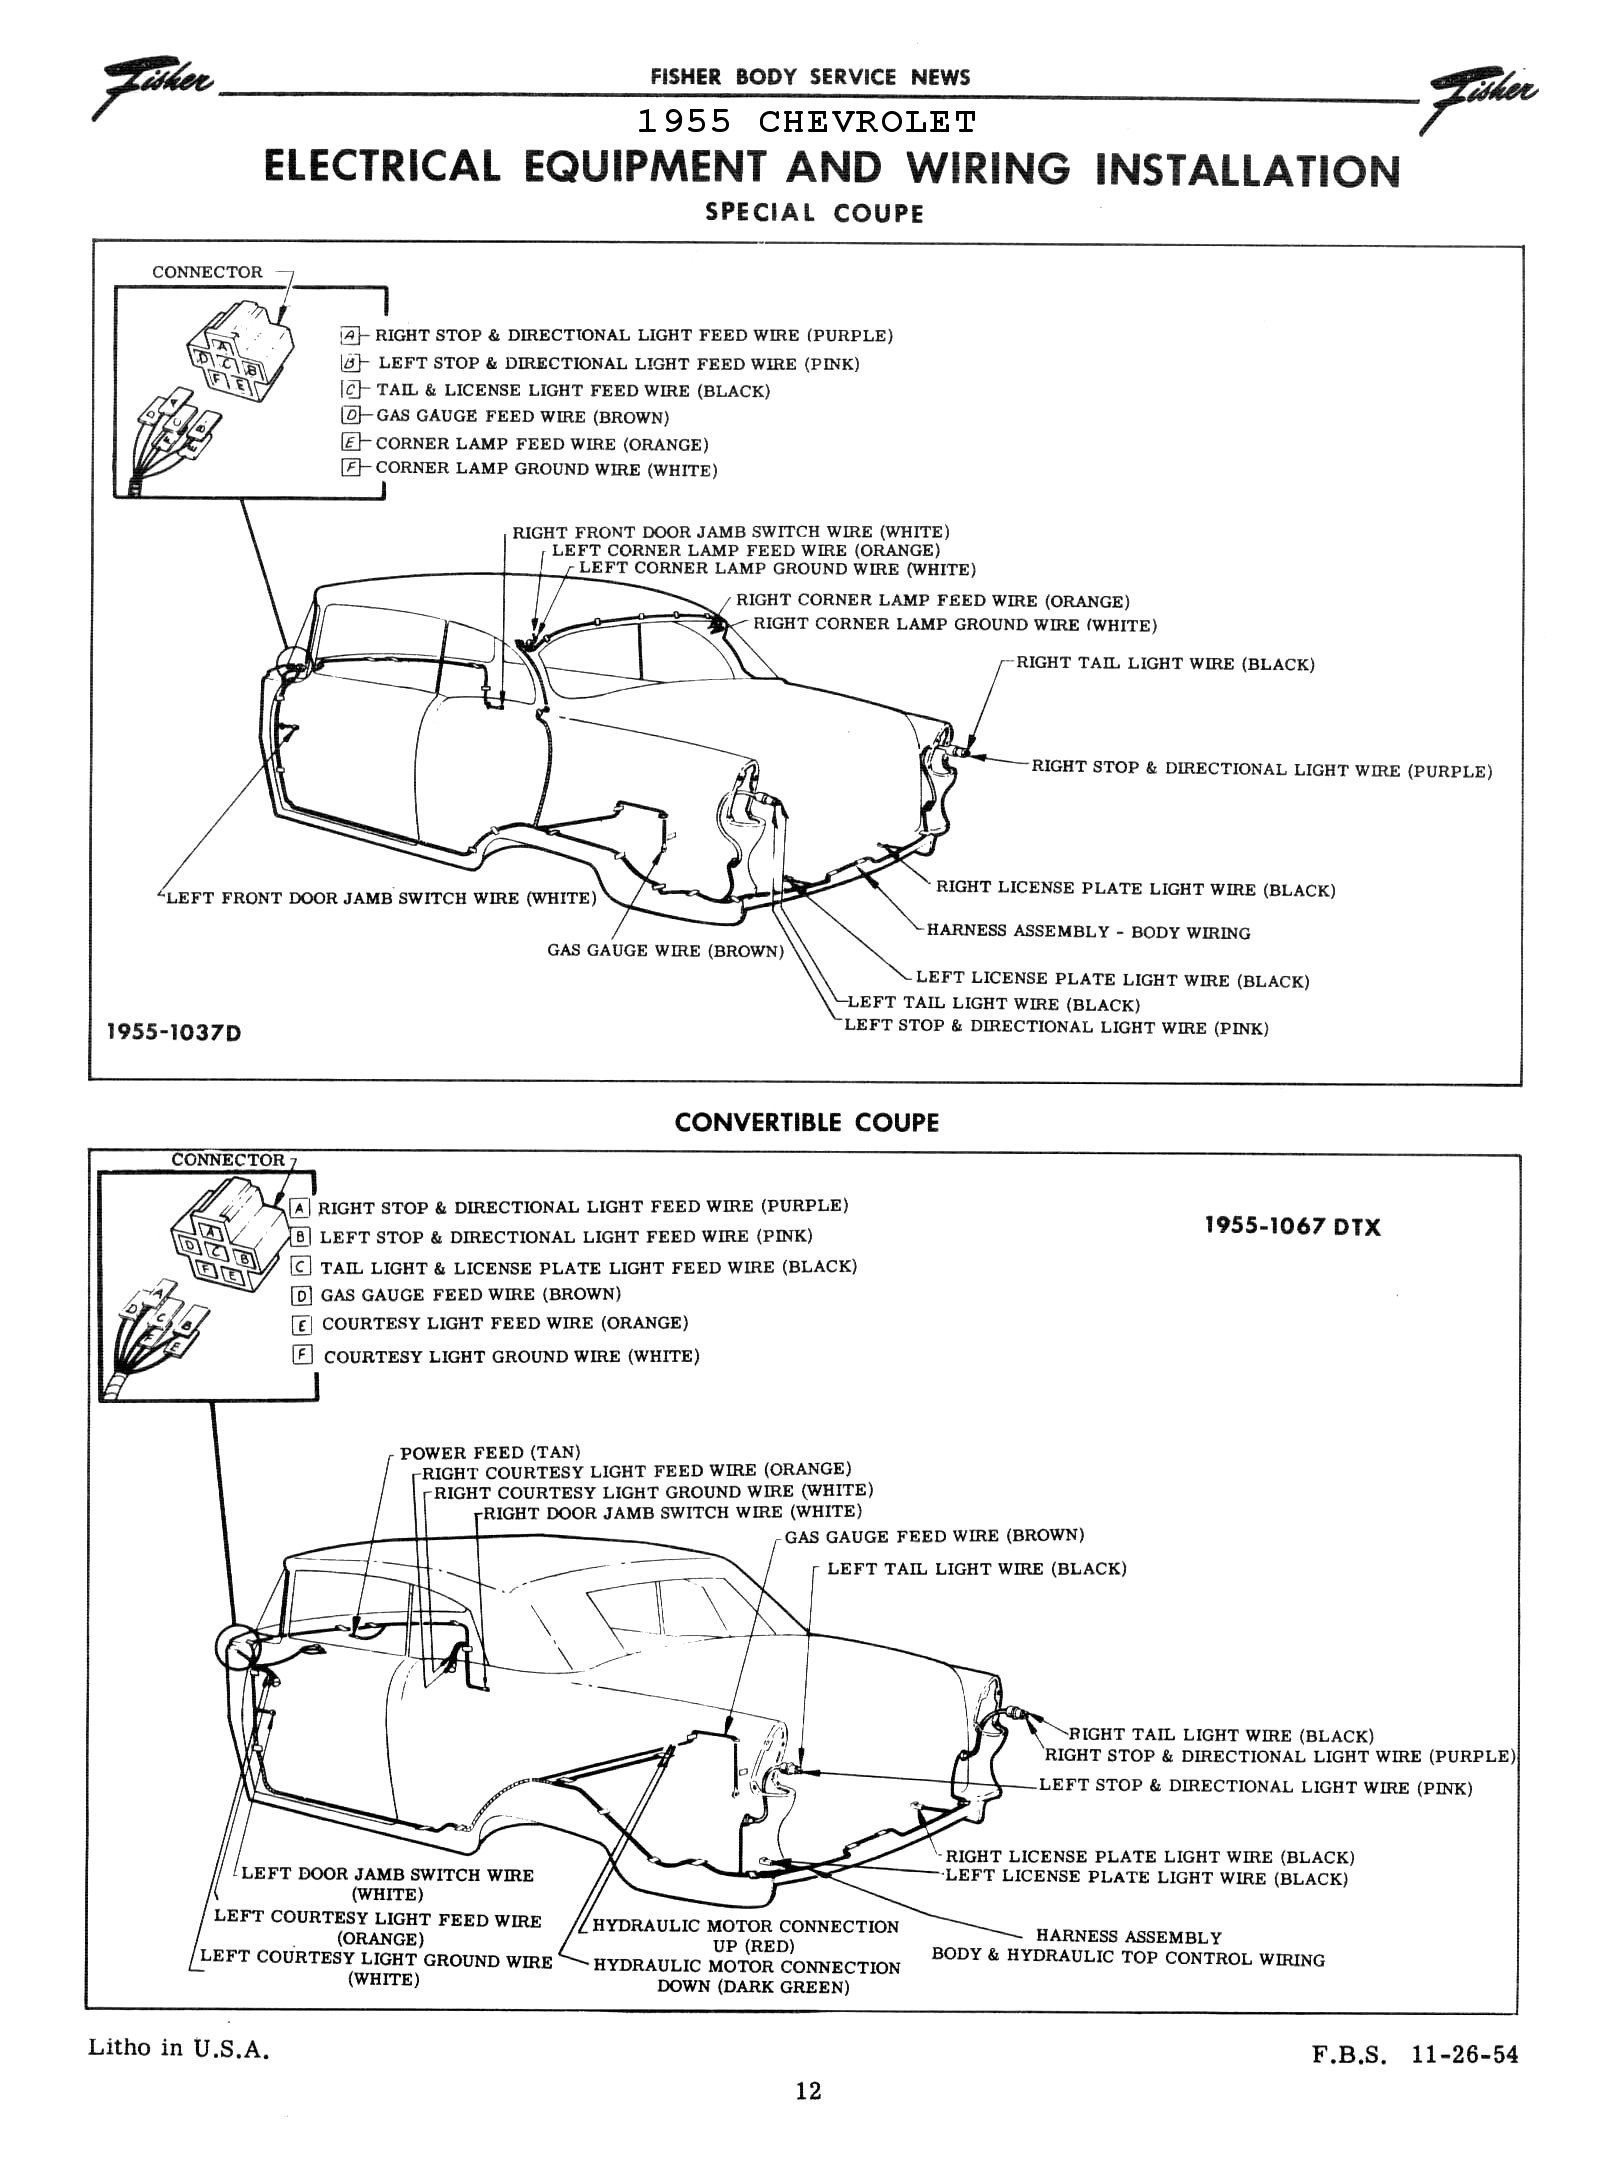 Chevy Wiring Diagrams Chieftain Turn Signal Diagram 1955 Body 3